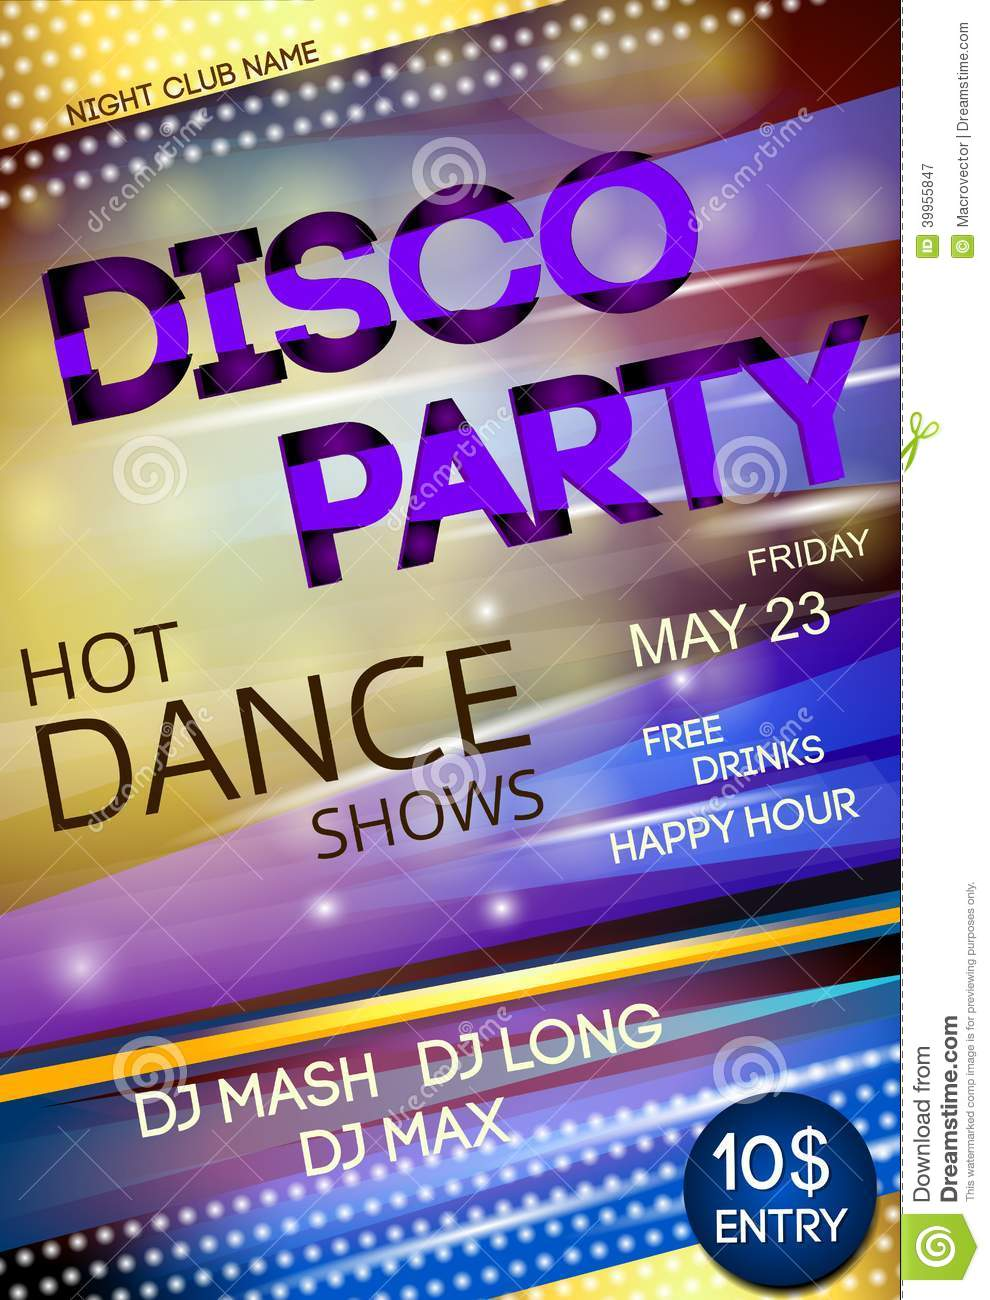 Night Club Disco Party Poster Stock Vector - Image: 39955847